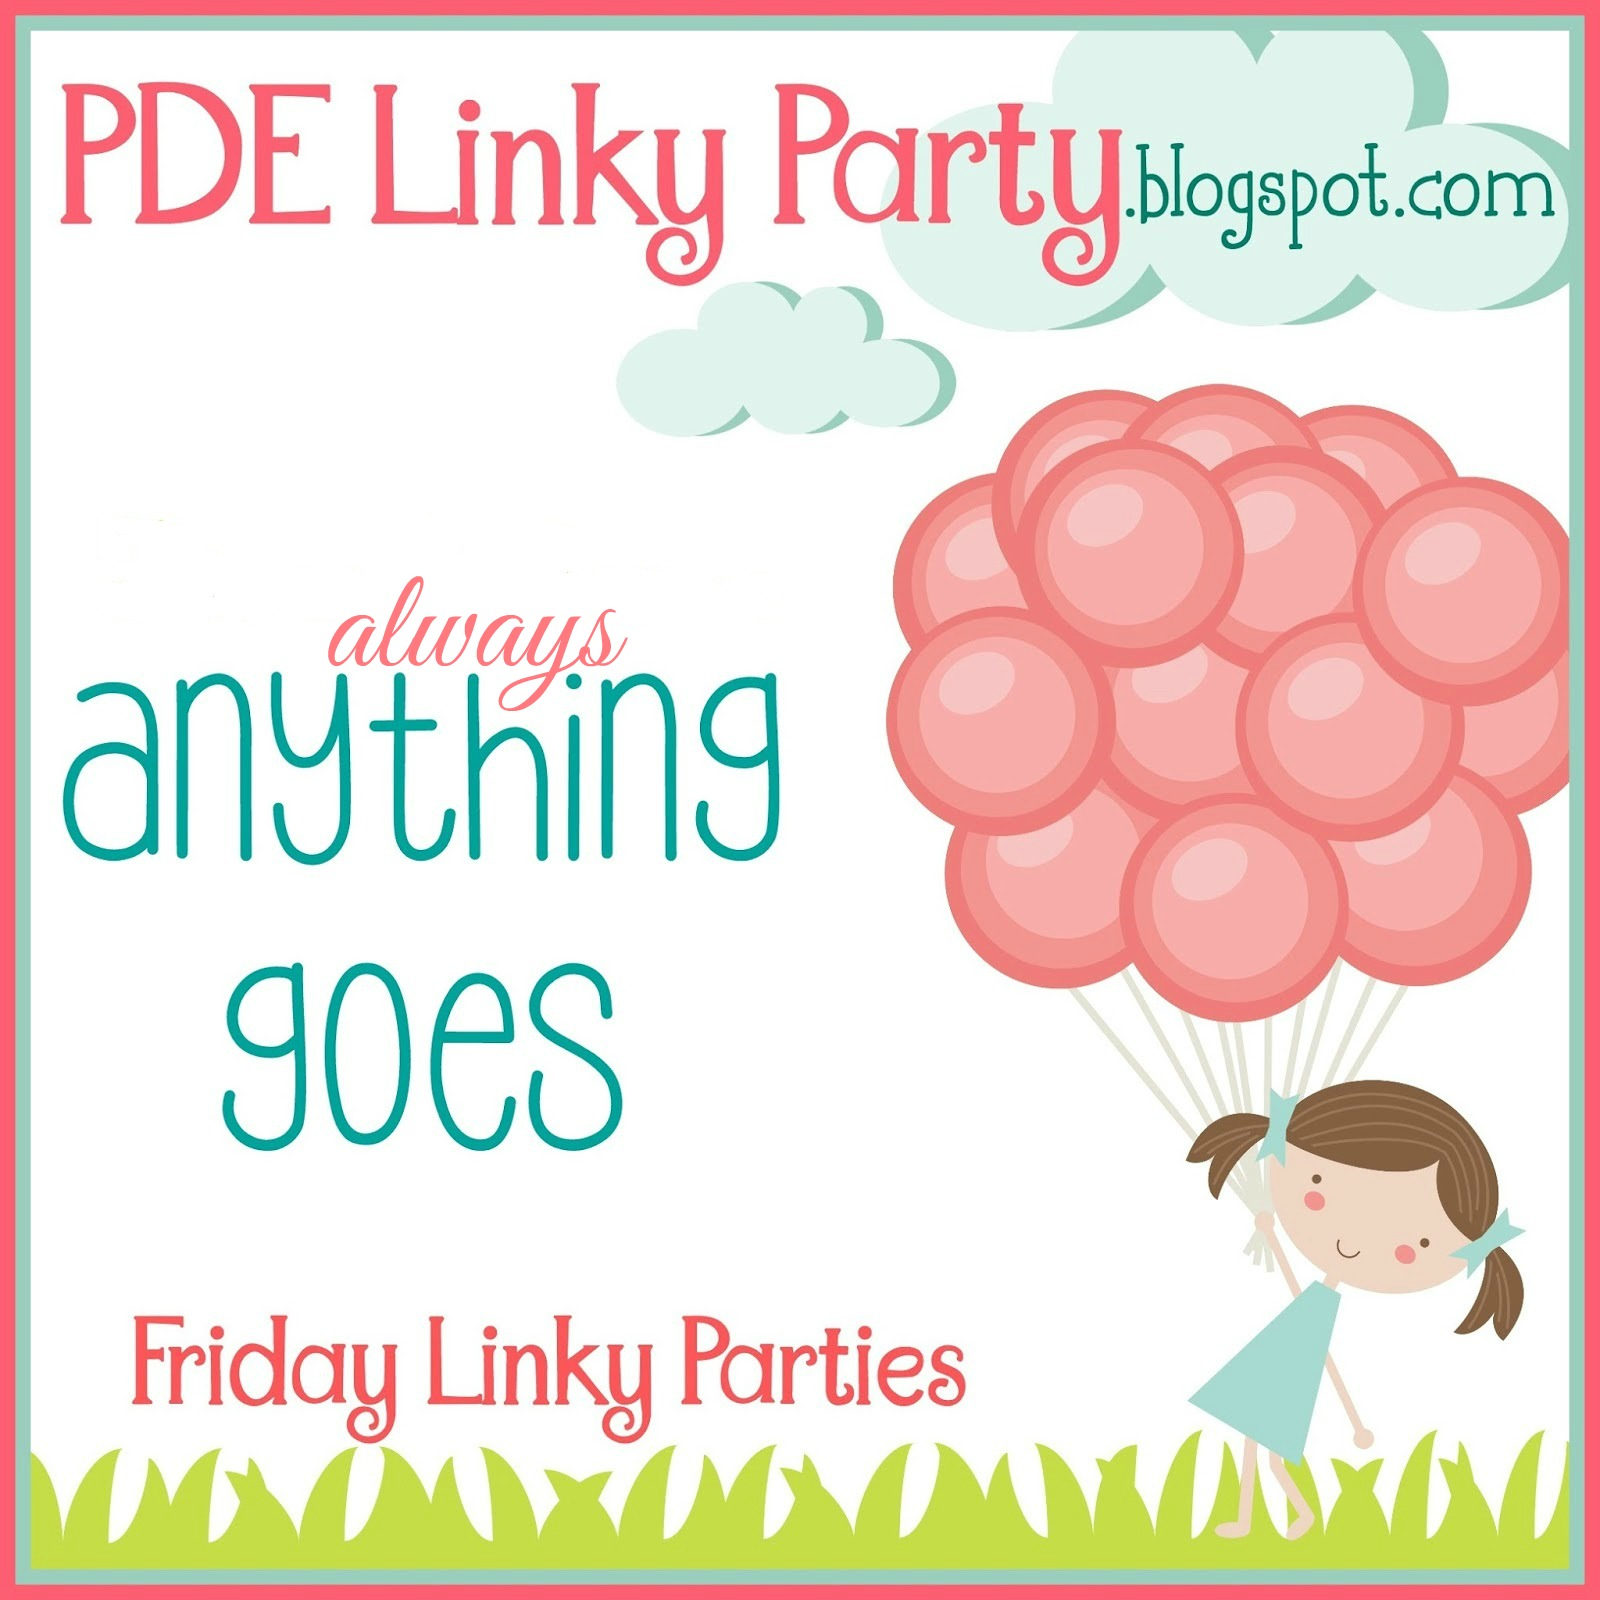 Always Anything Goes - new link up every Friday